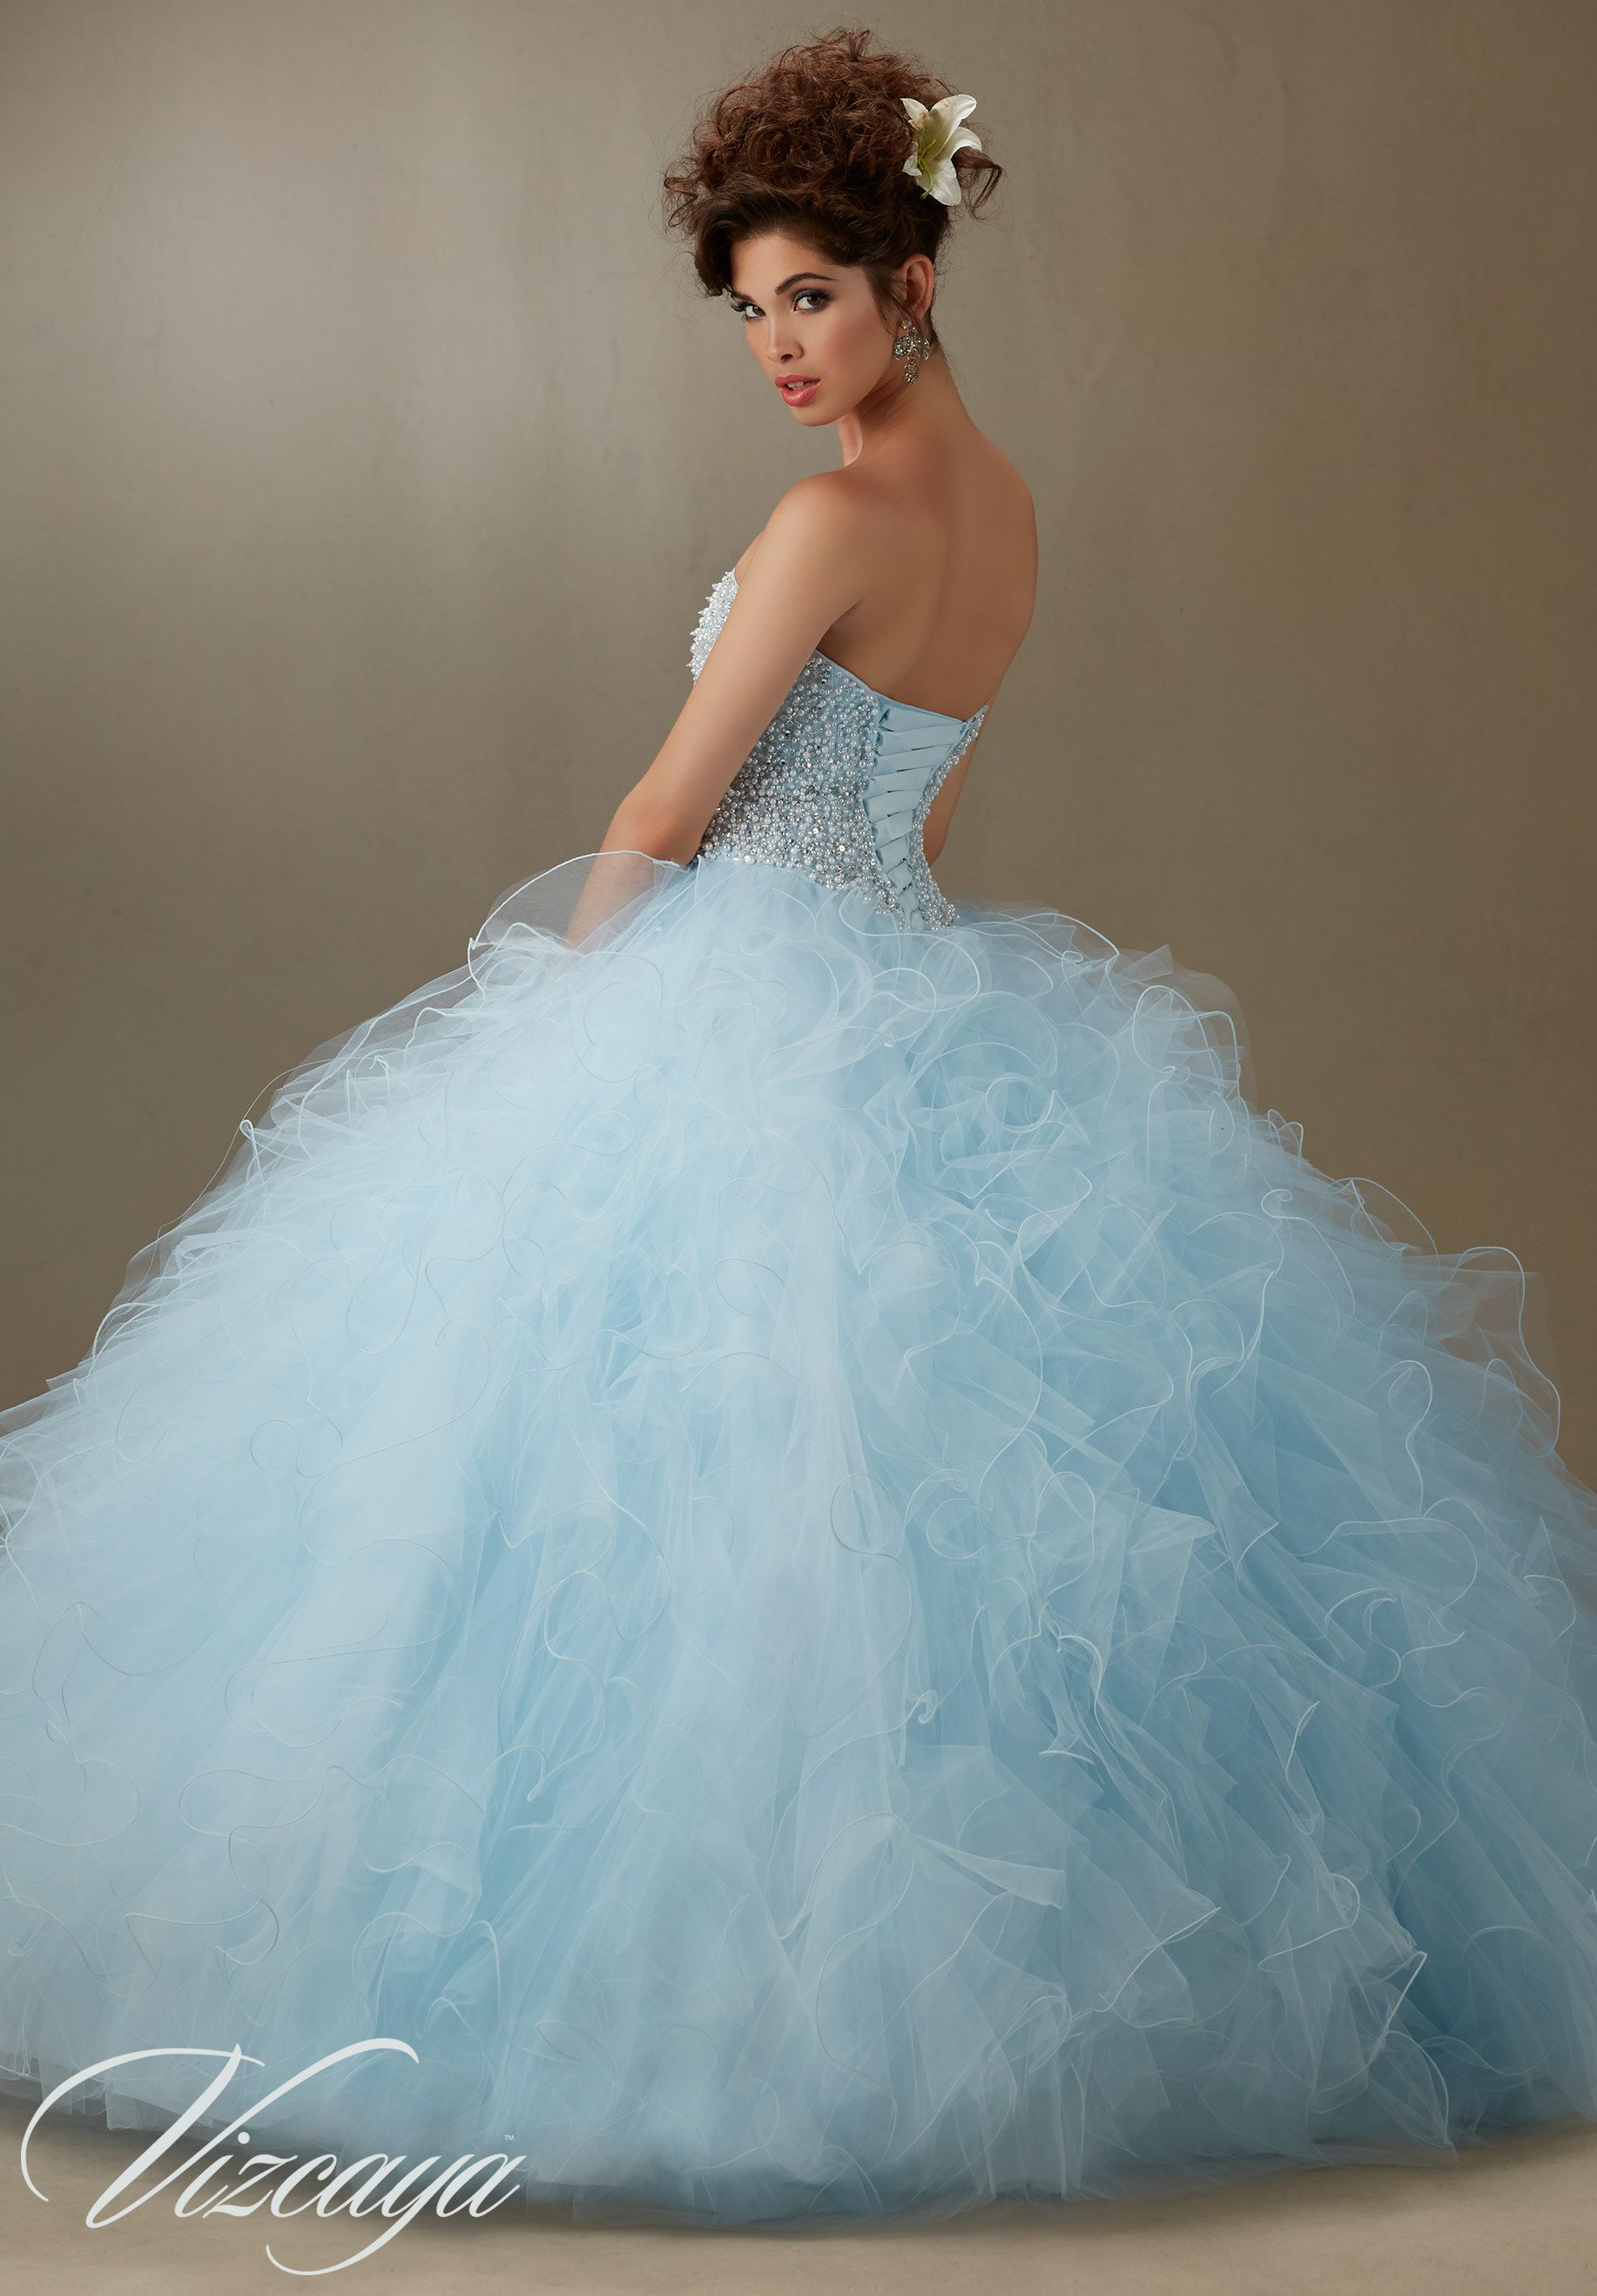 Pearl Beaded Bodice On Light Blue Ruffled Tulle Princess Ball Gown Quinceane Quinceanera Dresses Blue Pretty Quinceanera Dresses Light Blue Quinceanera Dresses [ 2636 x 1834 Pixel ]